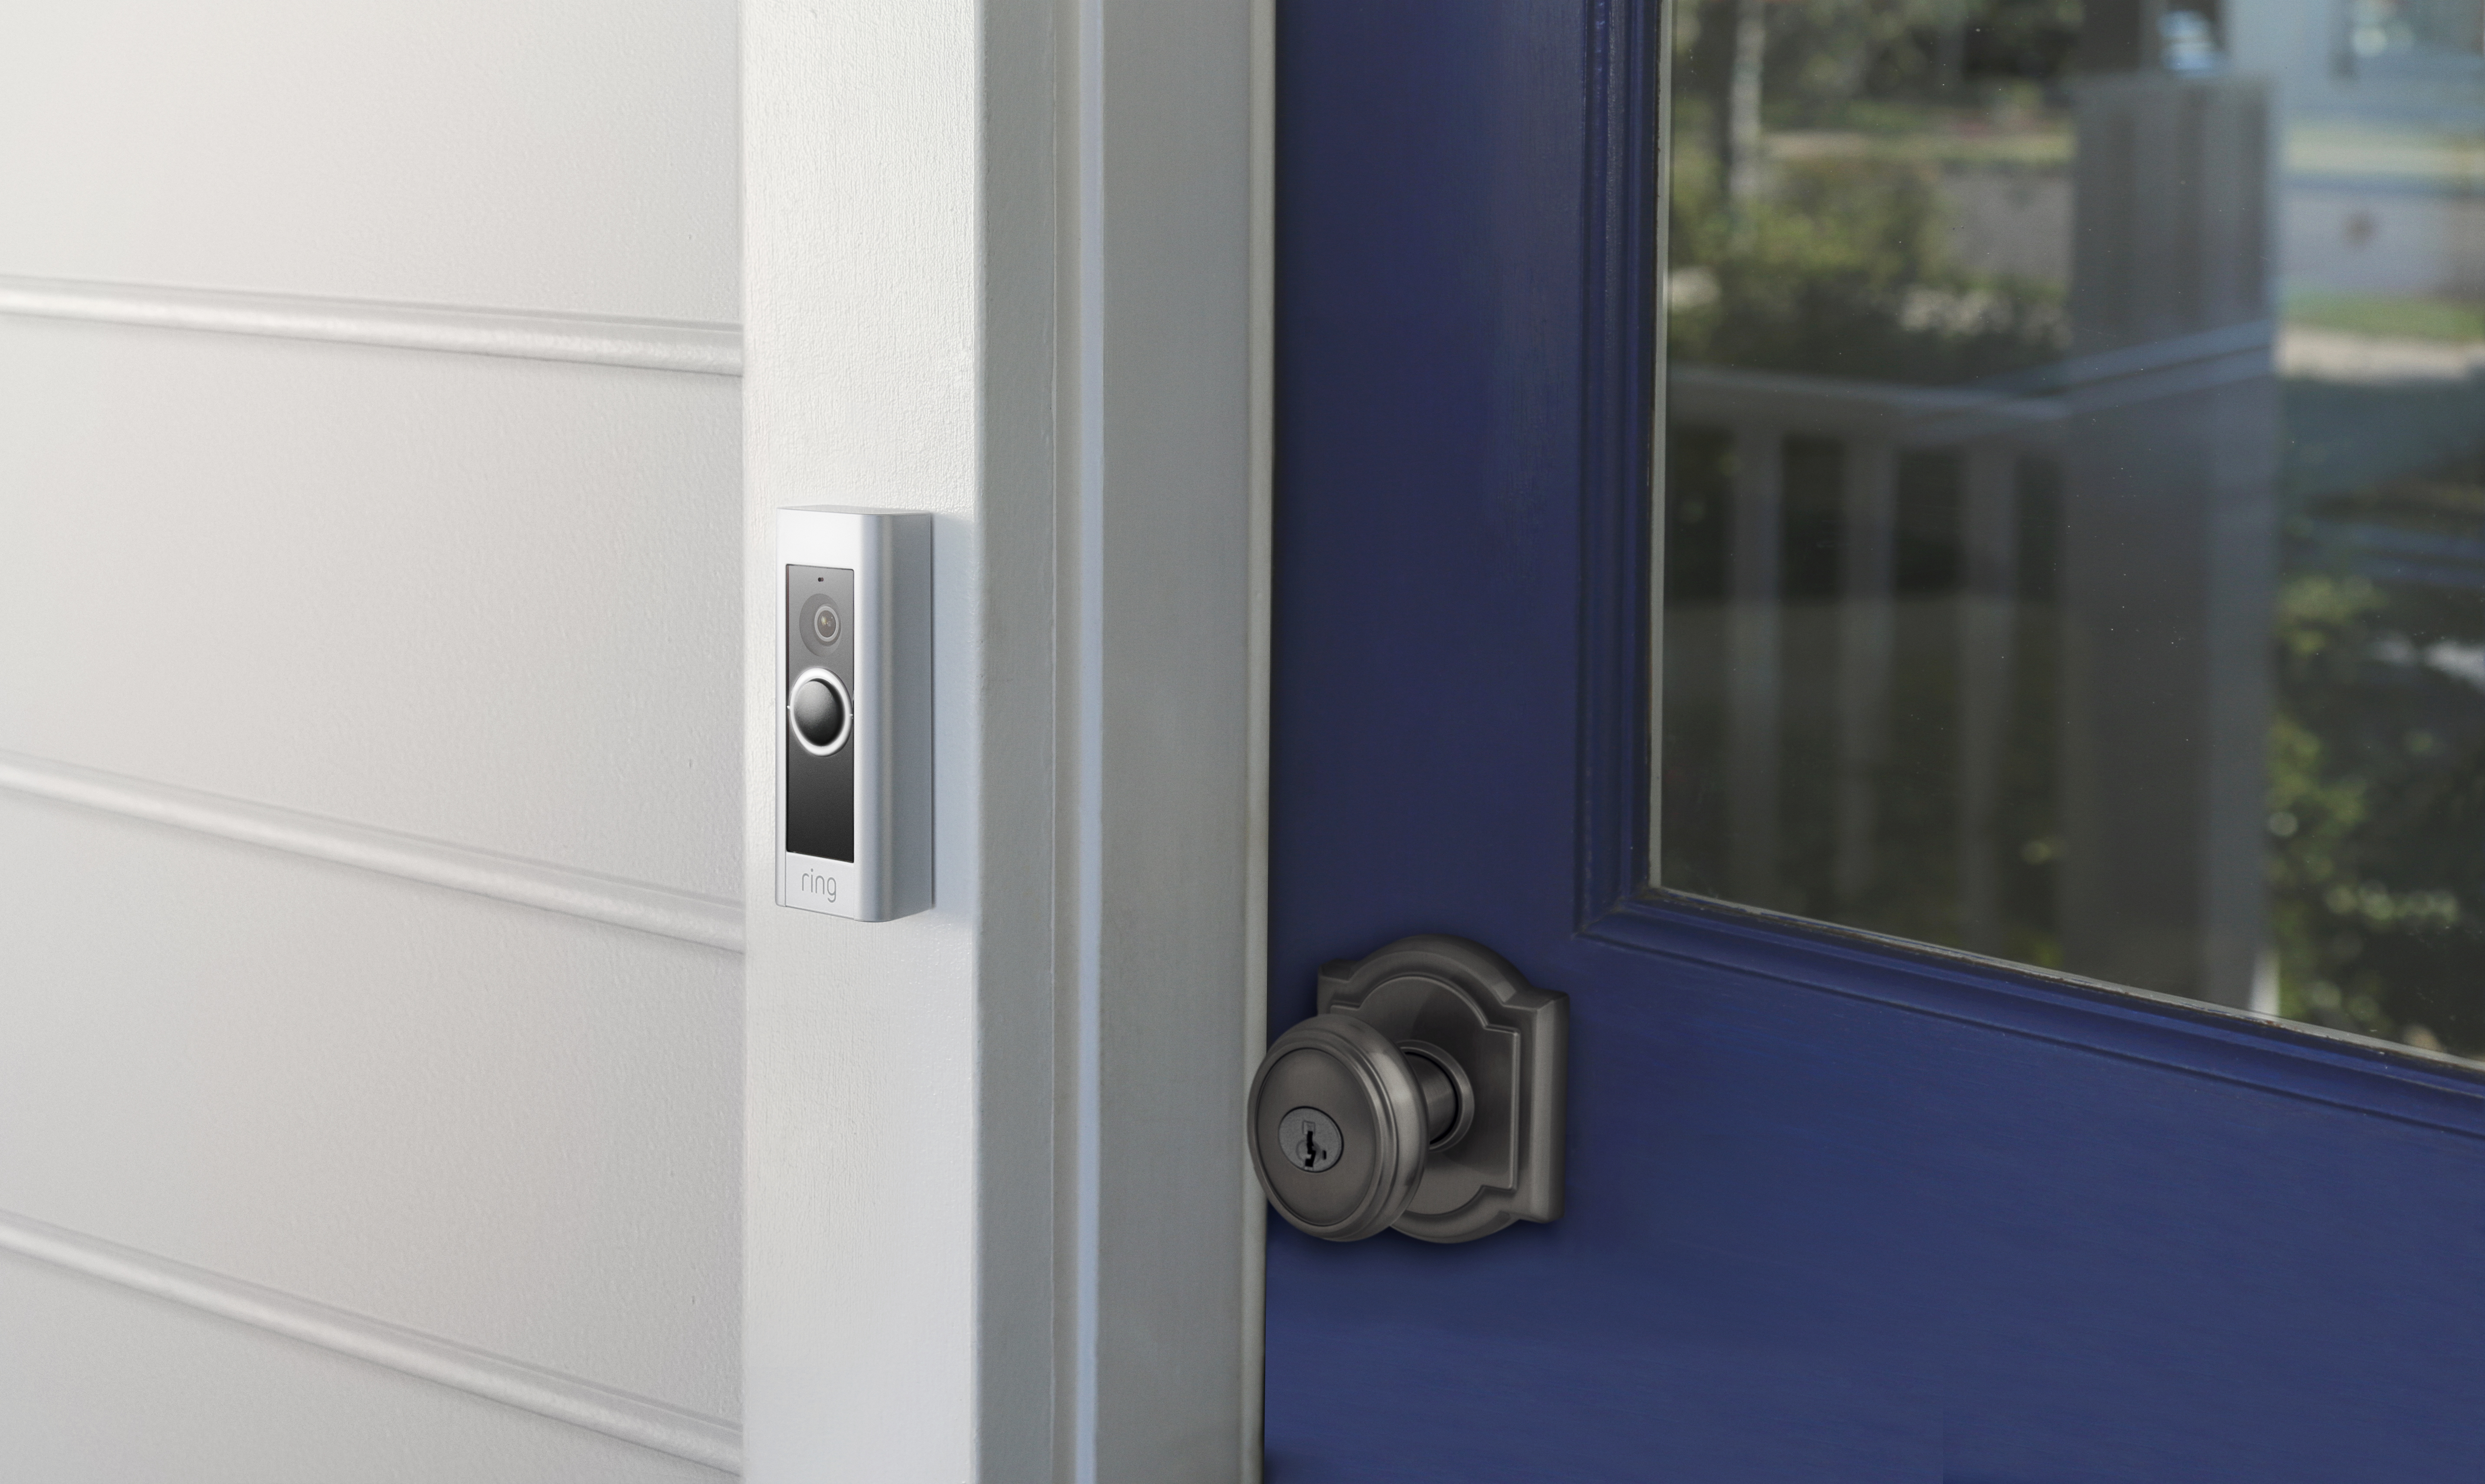 Ring video doorbells and cameras can give you peace of mind | Technology | Dallas News & Ring video doorbells and cameras can give you peace of mind ... pezcame.com